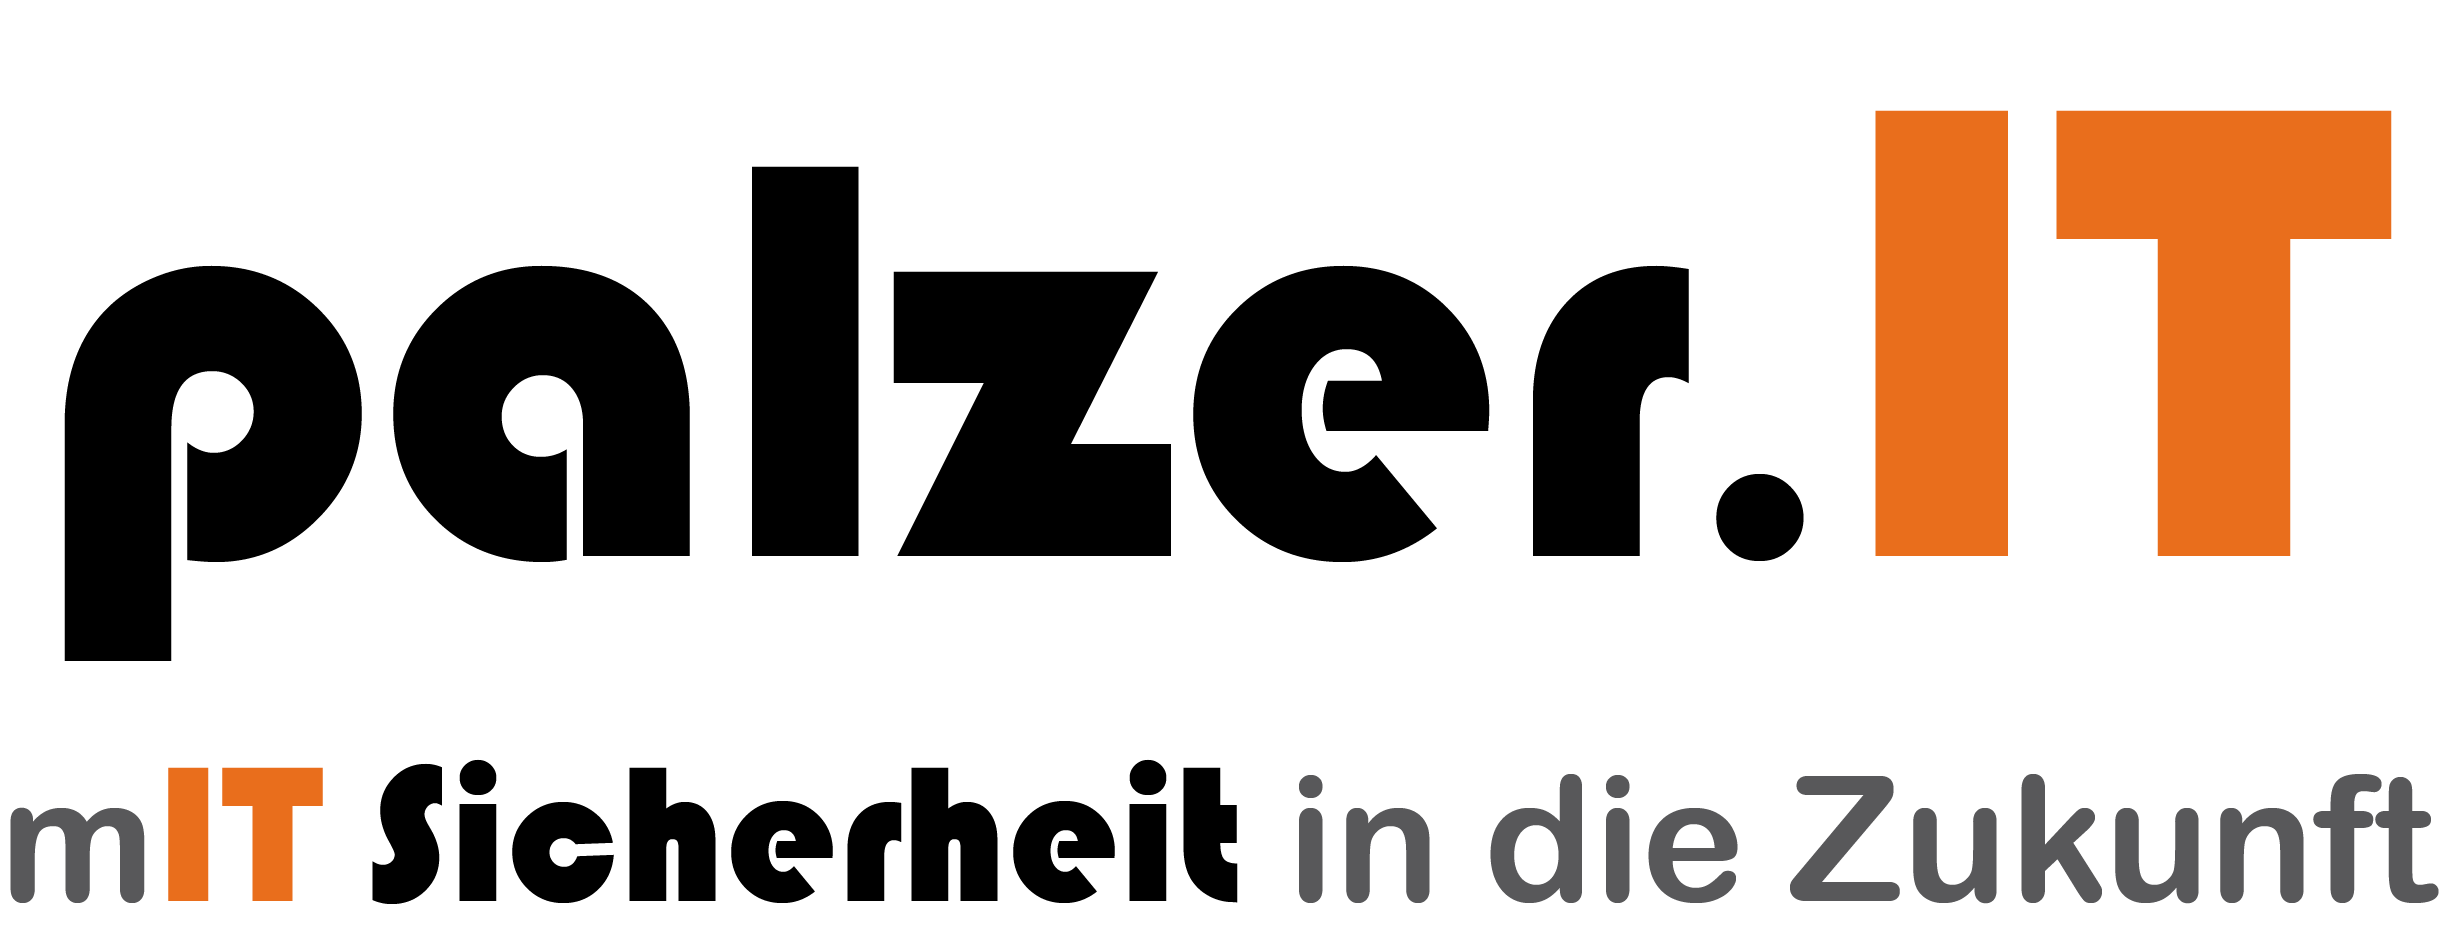 palzer.IT - Logo